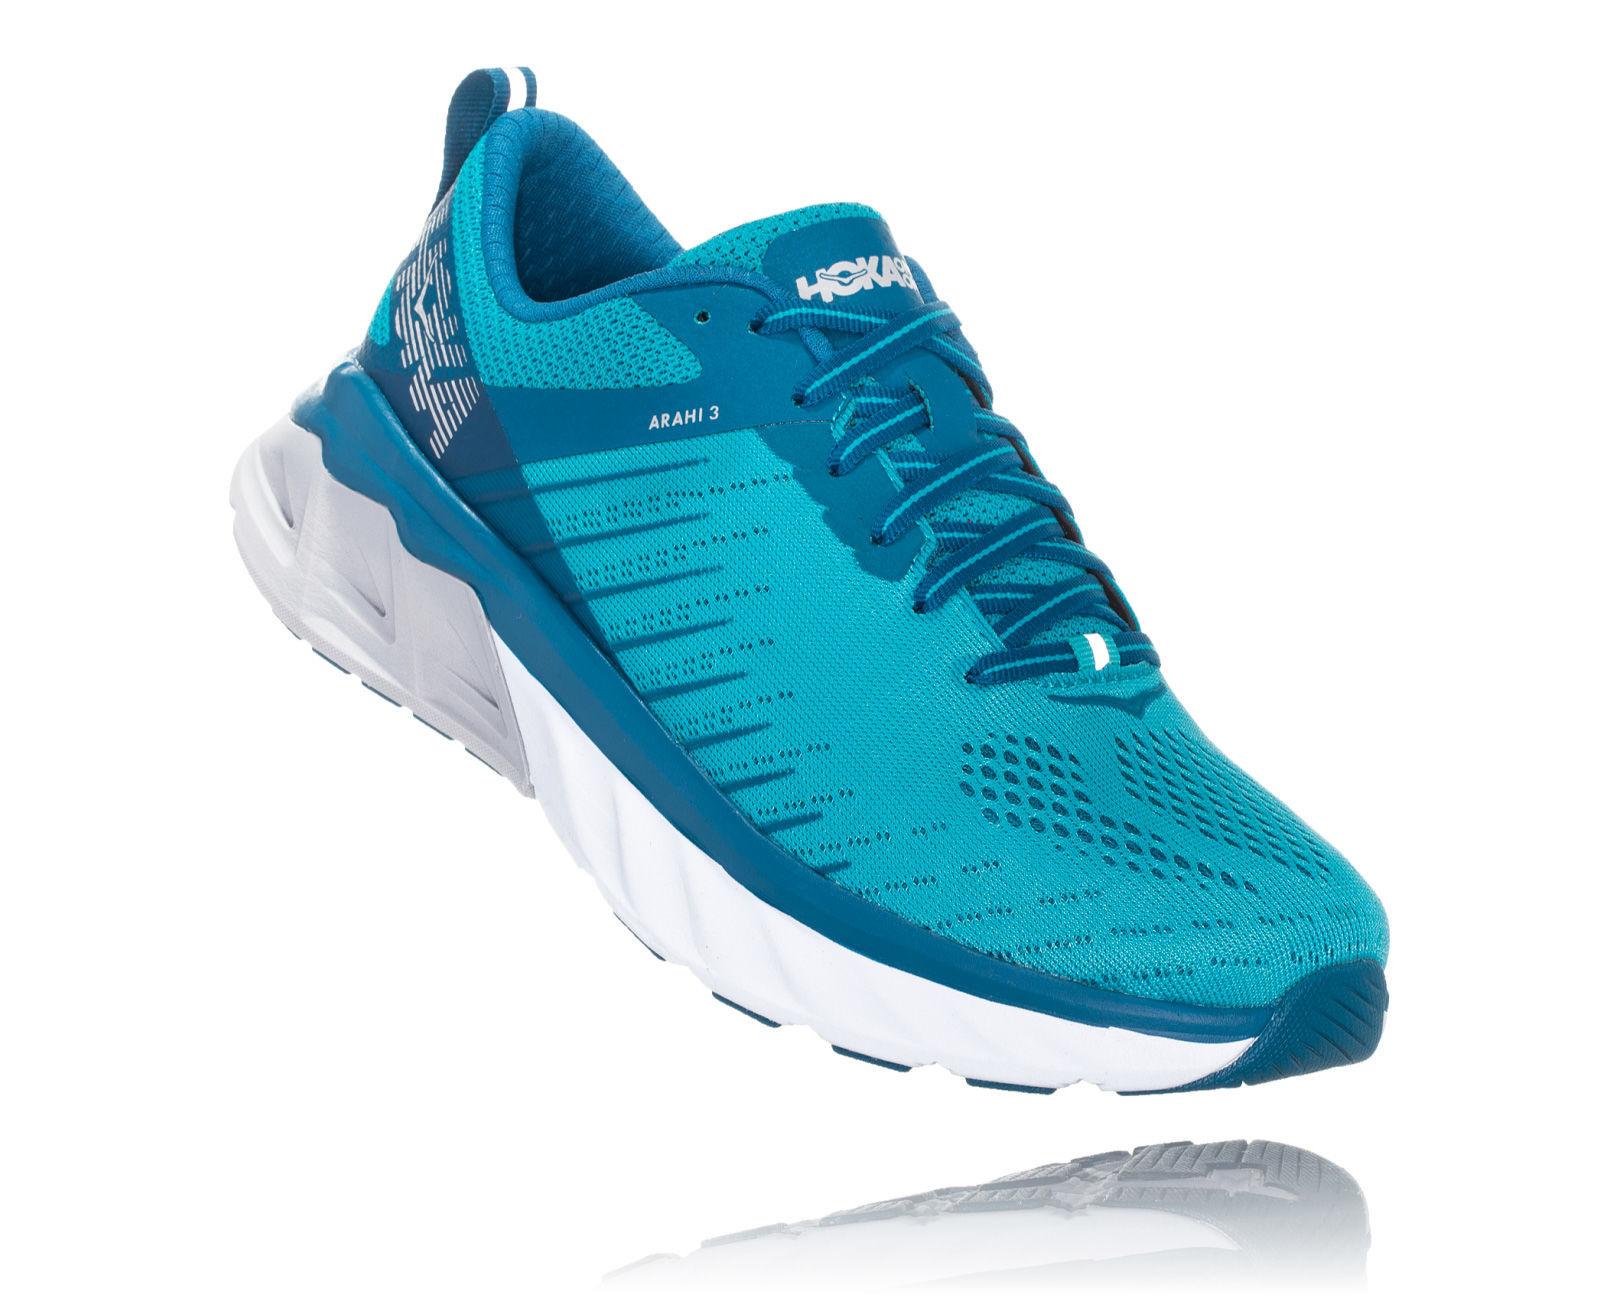 Hoka One One Lady Arahi 3 in Blau